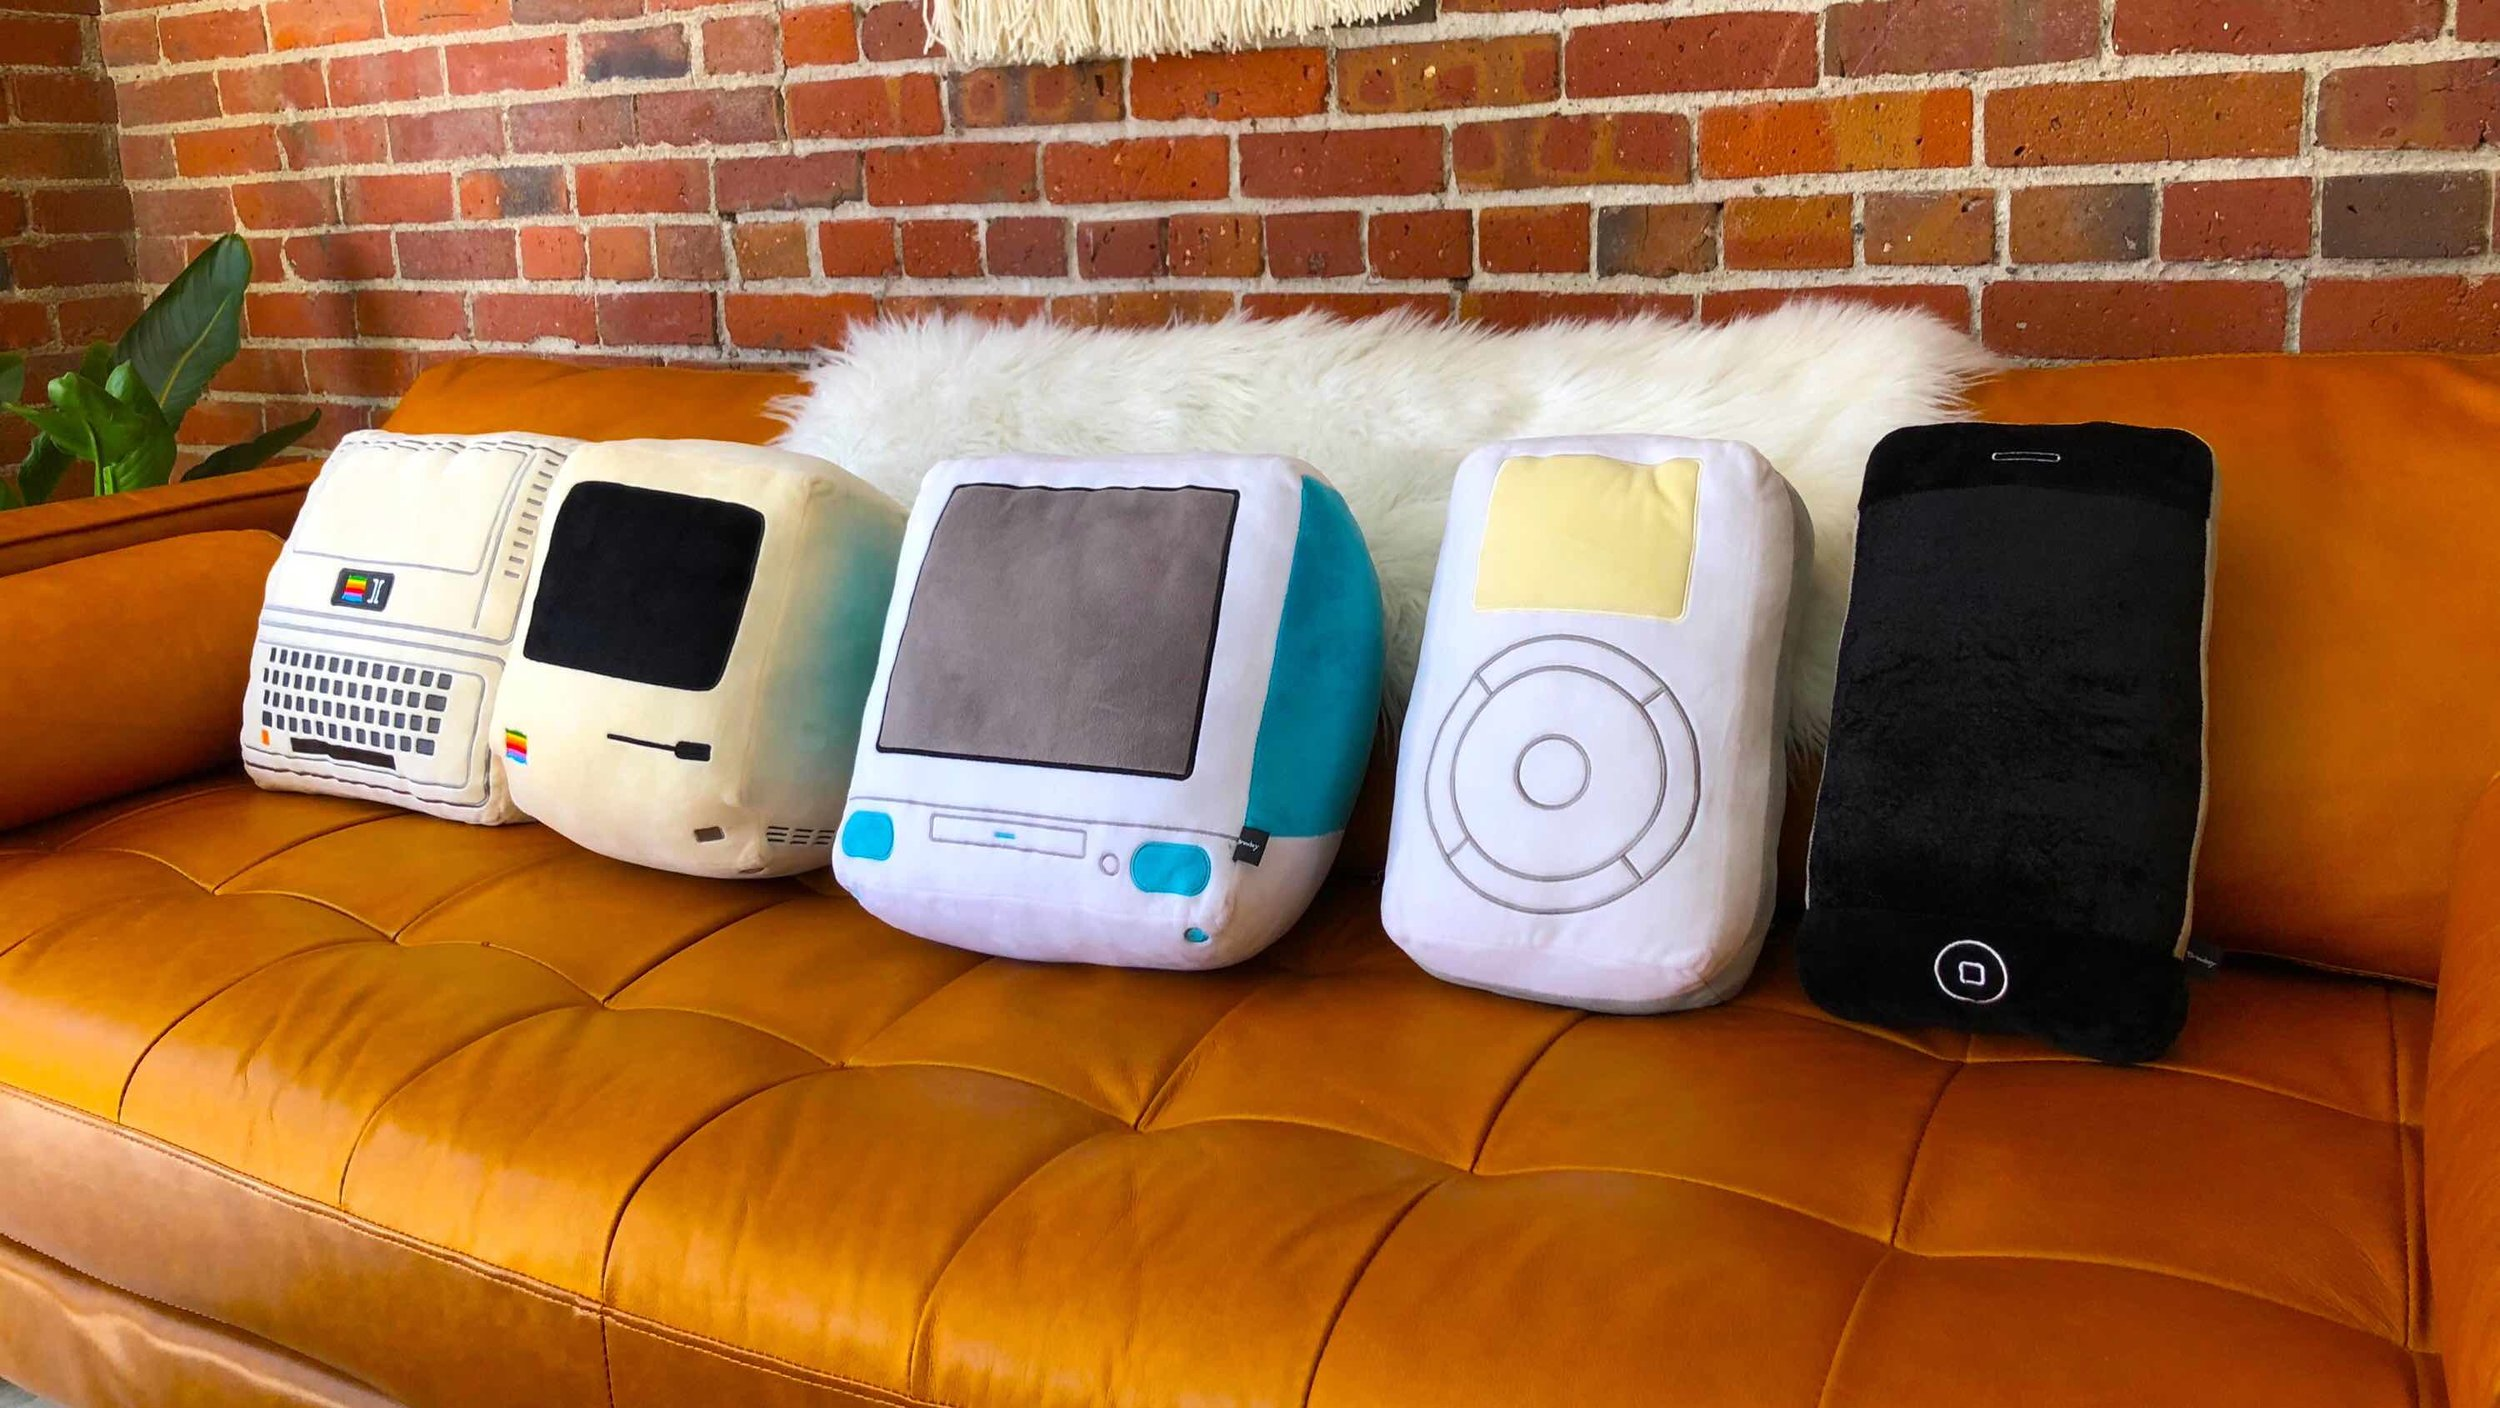 - A cuddly tribute to the tech that changed our lives.